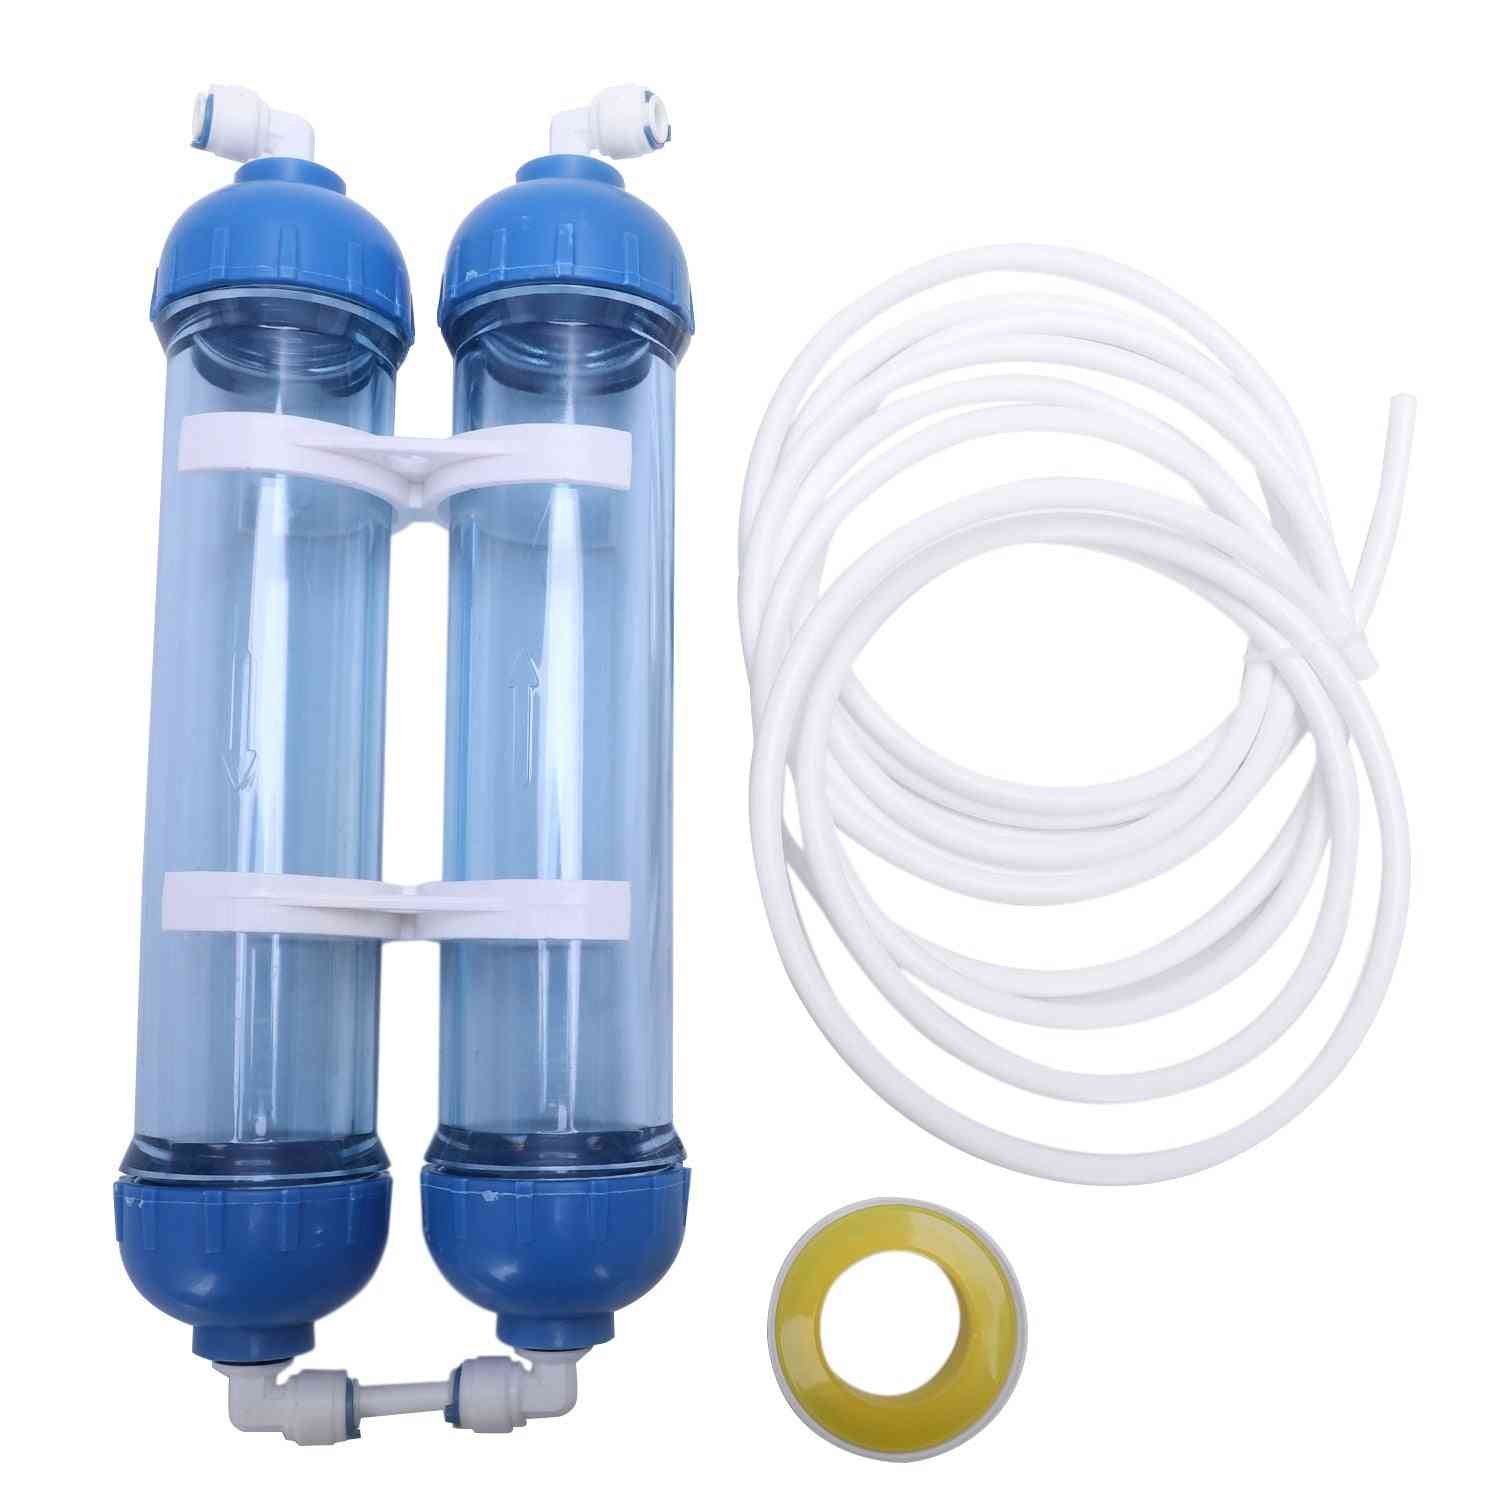 Water Filter Cartridge Housing Shell Bottle Fittings Purifier Reverse Osmosis System